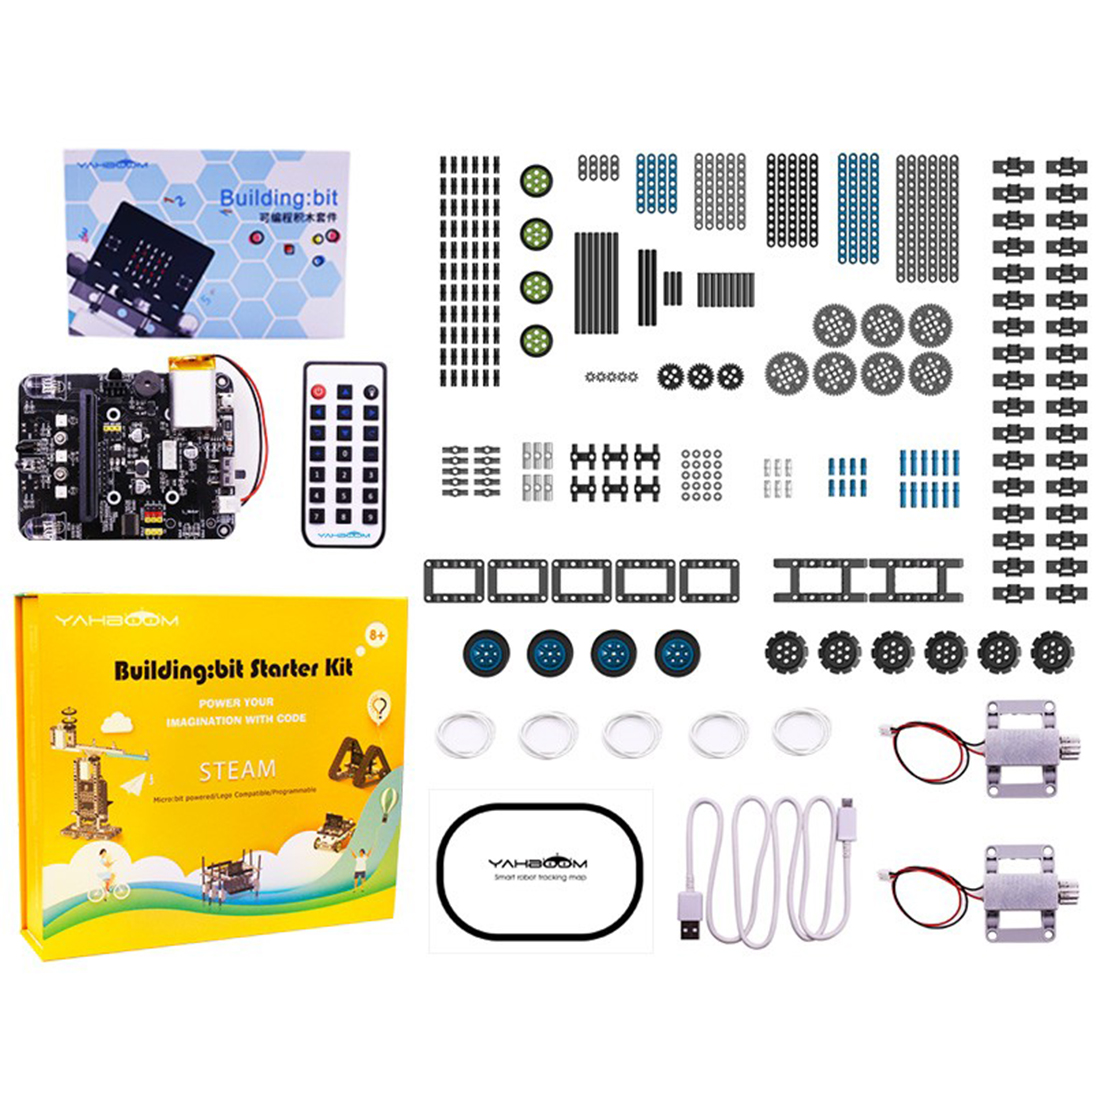 Micro:Bit STEM Kits Programmable Microbit Robots DIY Toy Car With Tutorial Tracking Scientific Education Gift For Kids 2